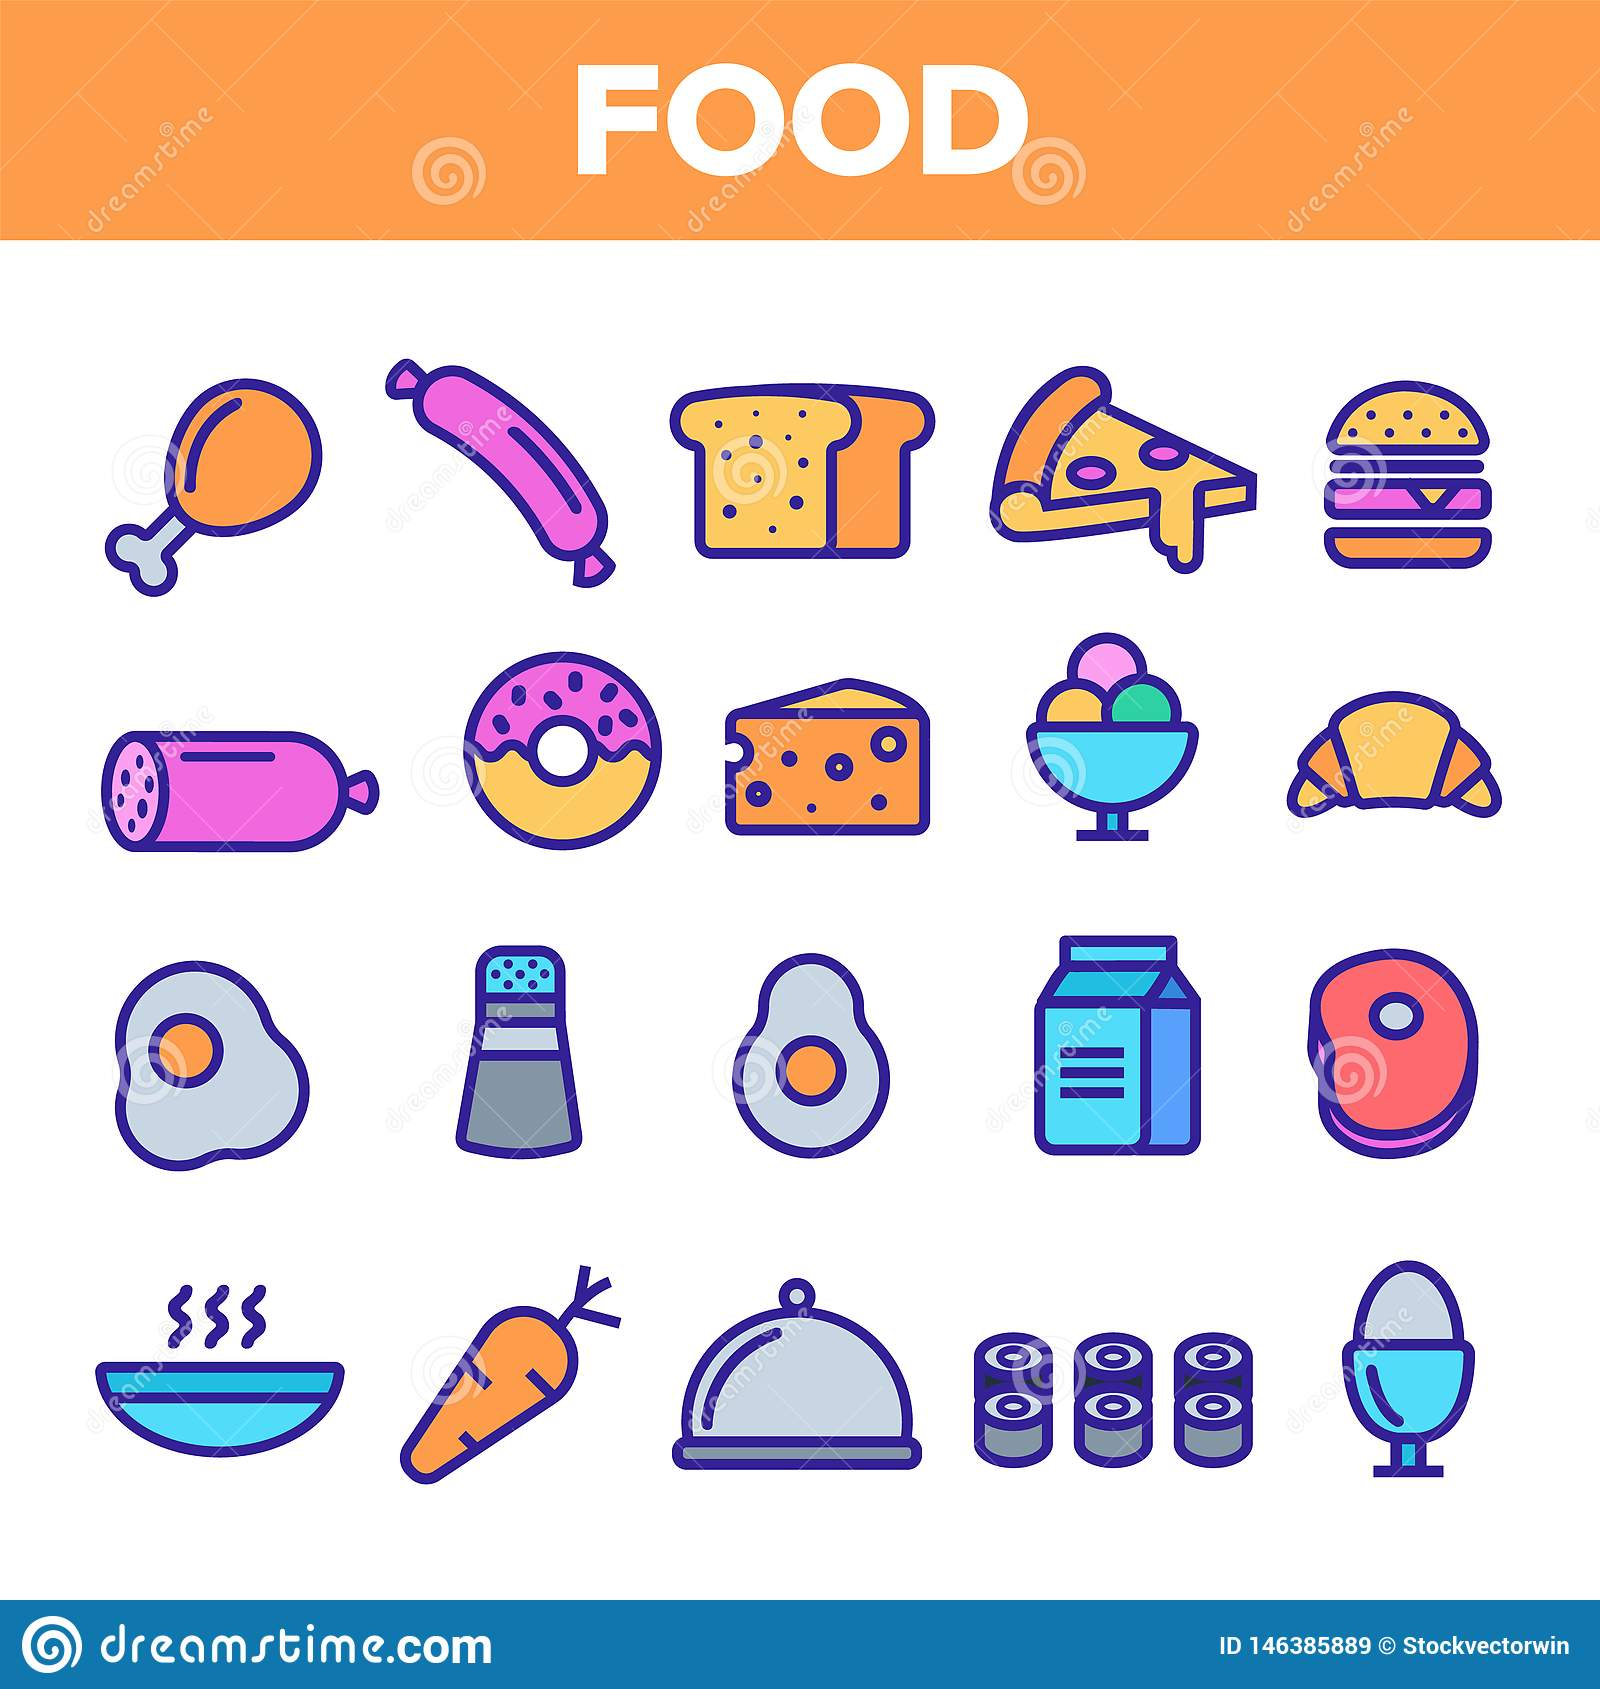 Food Line Icon Set Vector. Home Kitchen Breakfast Food Icons. Menu Pictogram. Fesh Eating Element. Thin Outline Web